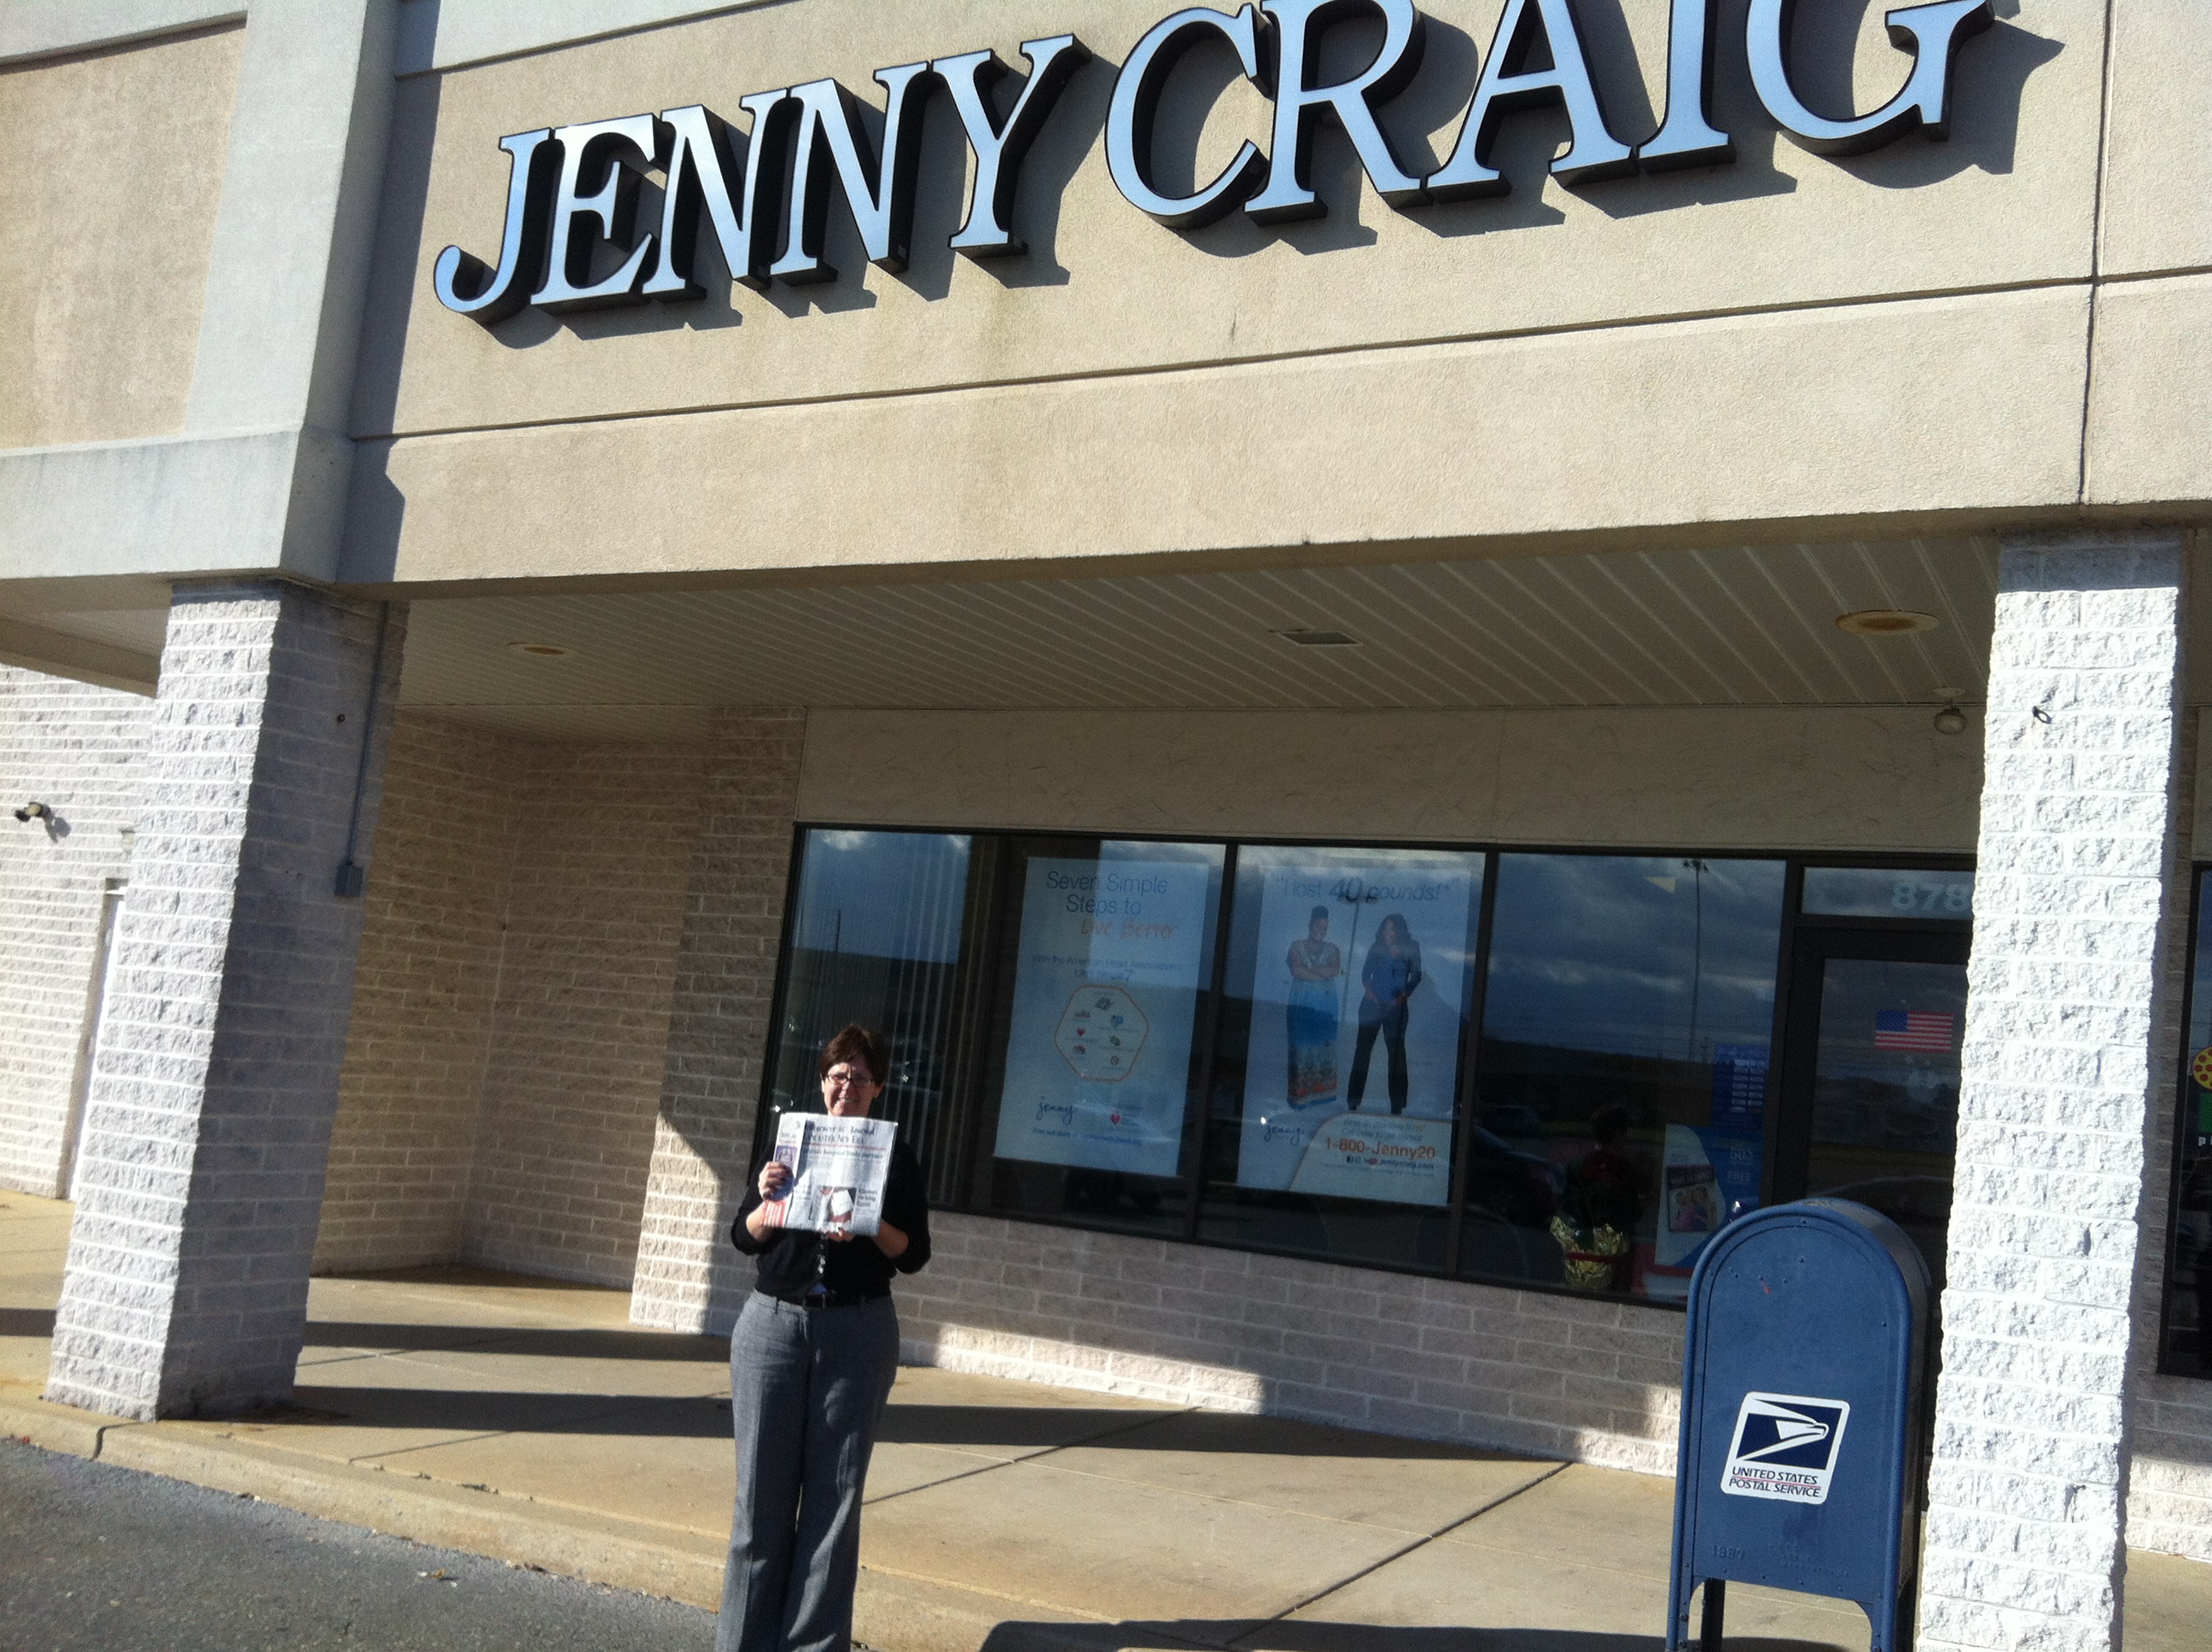 Jenny Craig Lancaster Weight Loss Centers in Lancaster, PA